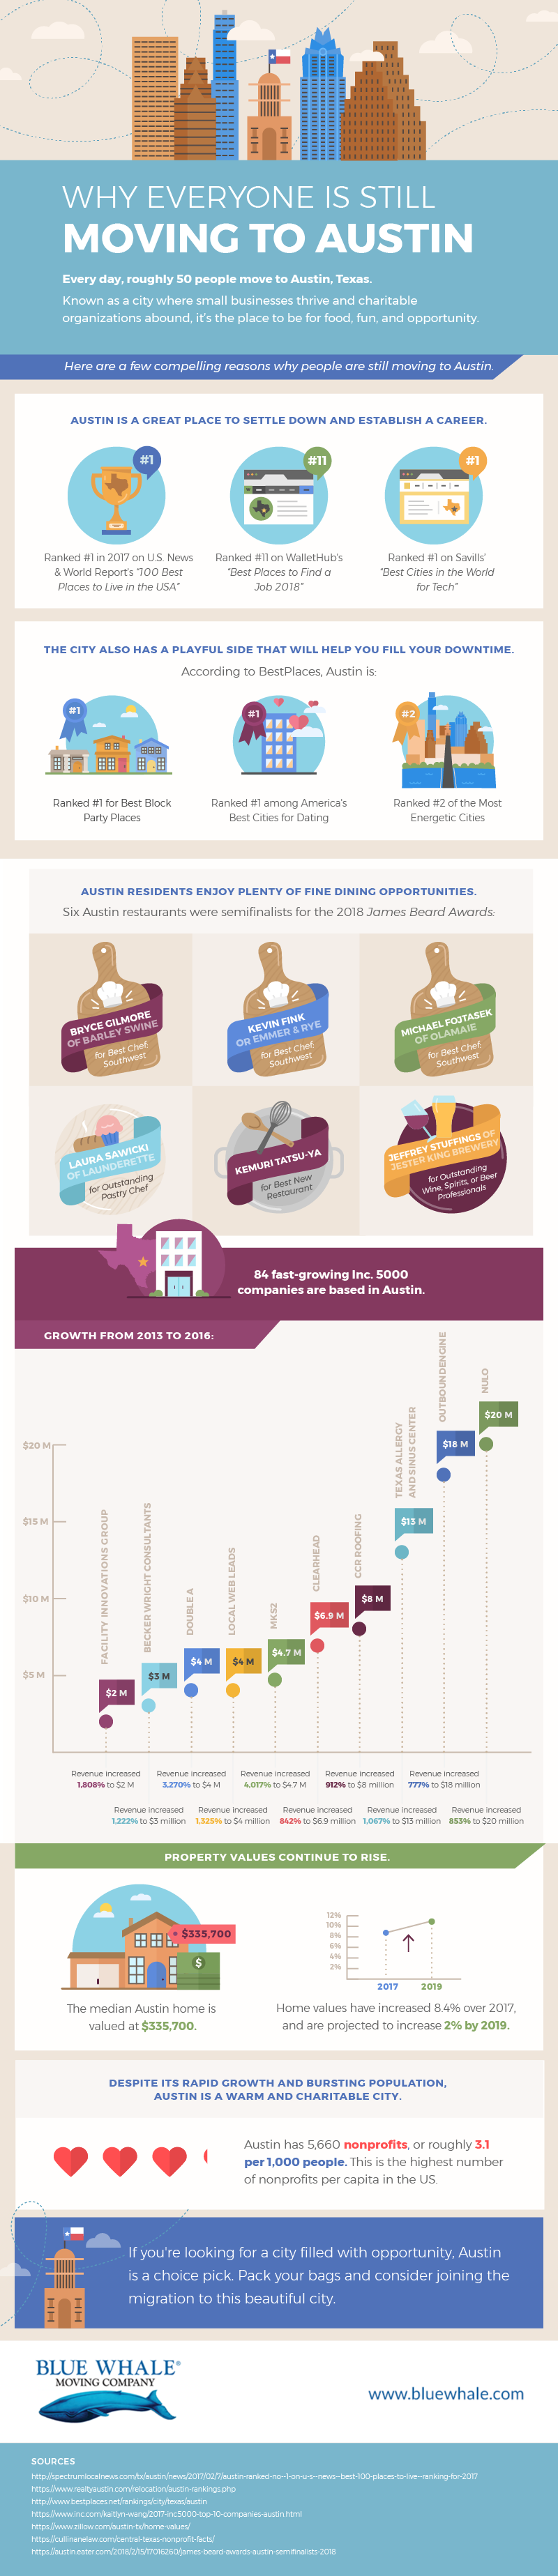 The Almost Endless List the Reasons to Move to Austin! - Infographic